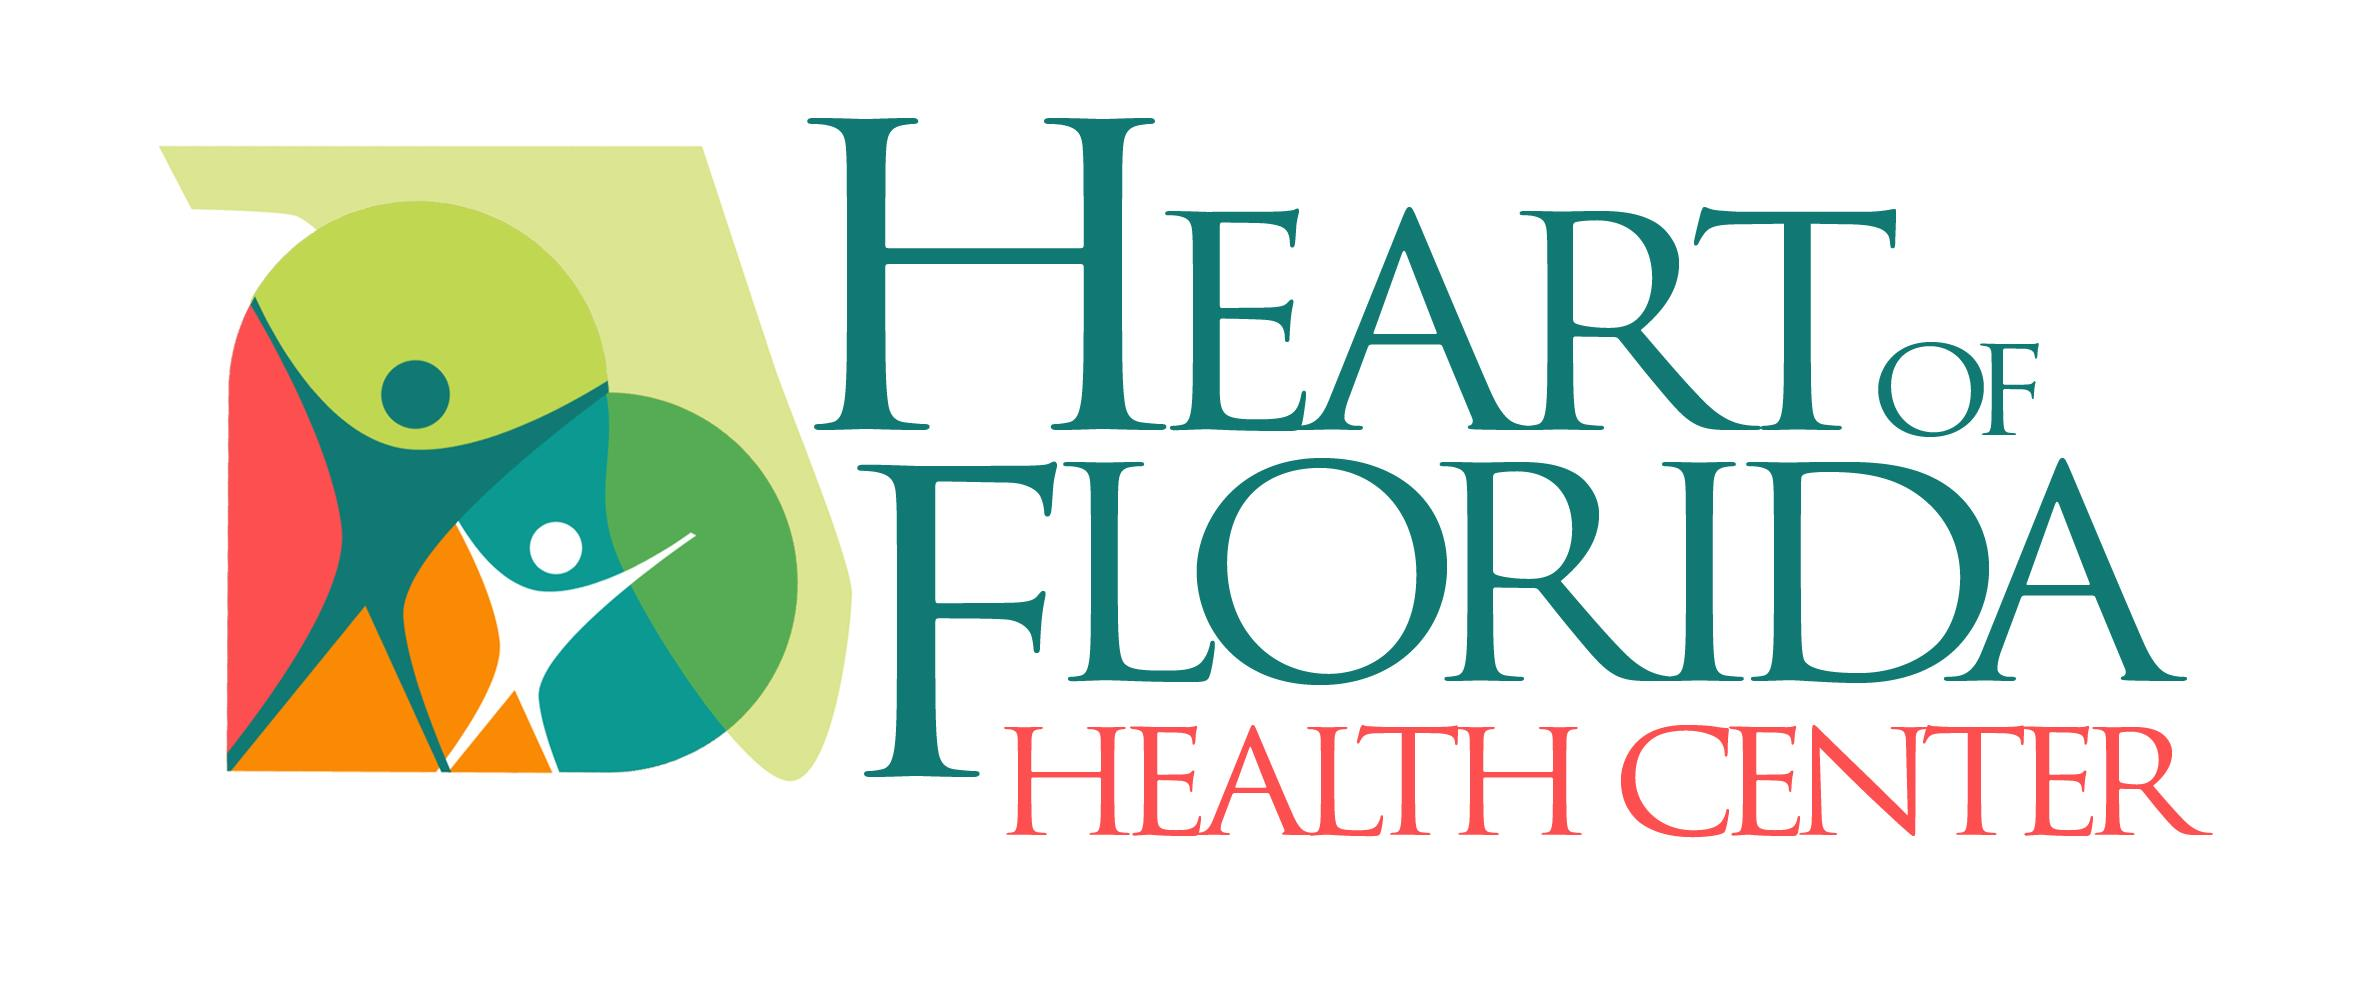 Heart of Florida Health Center - West